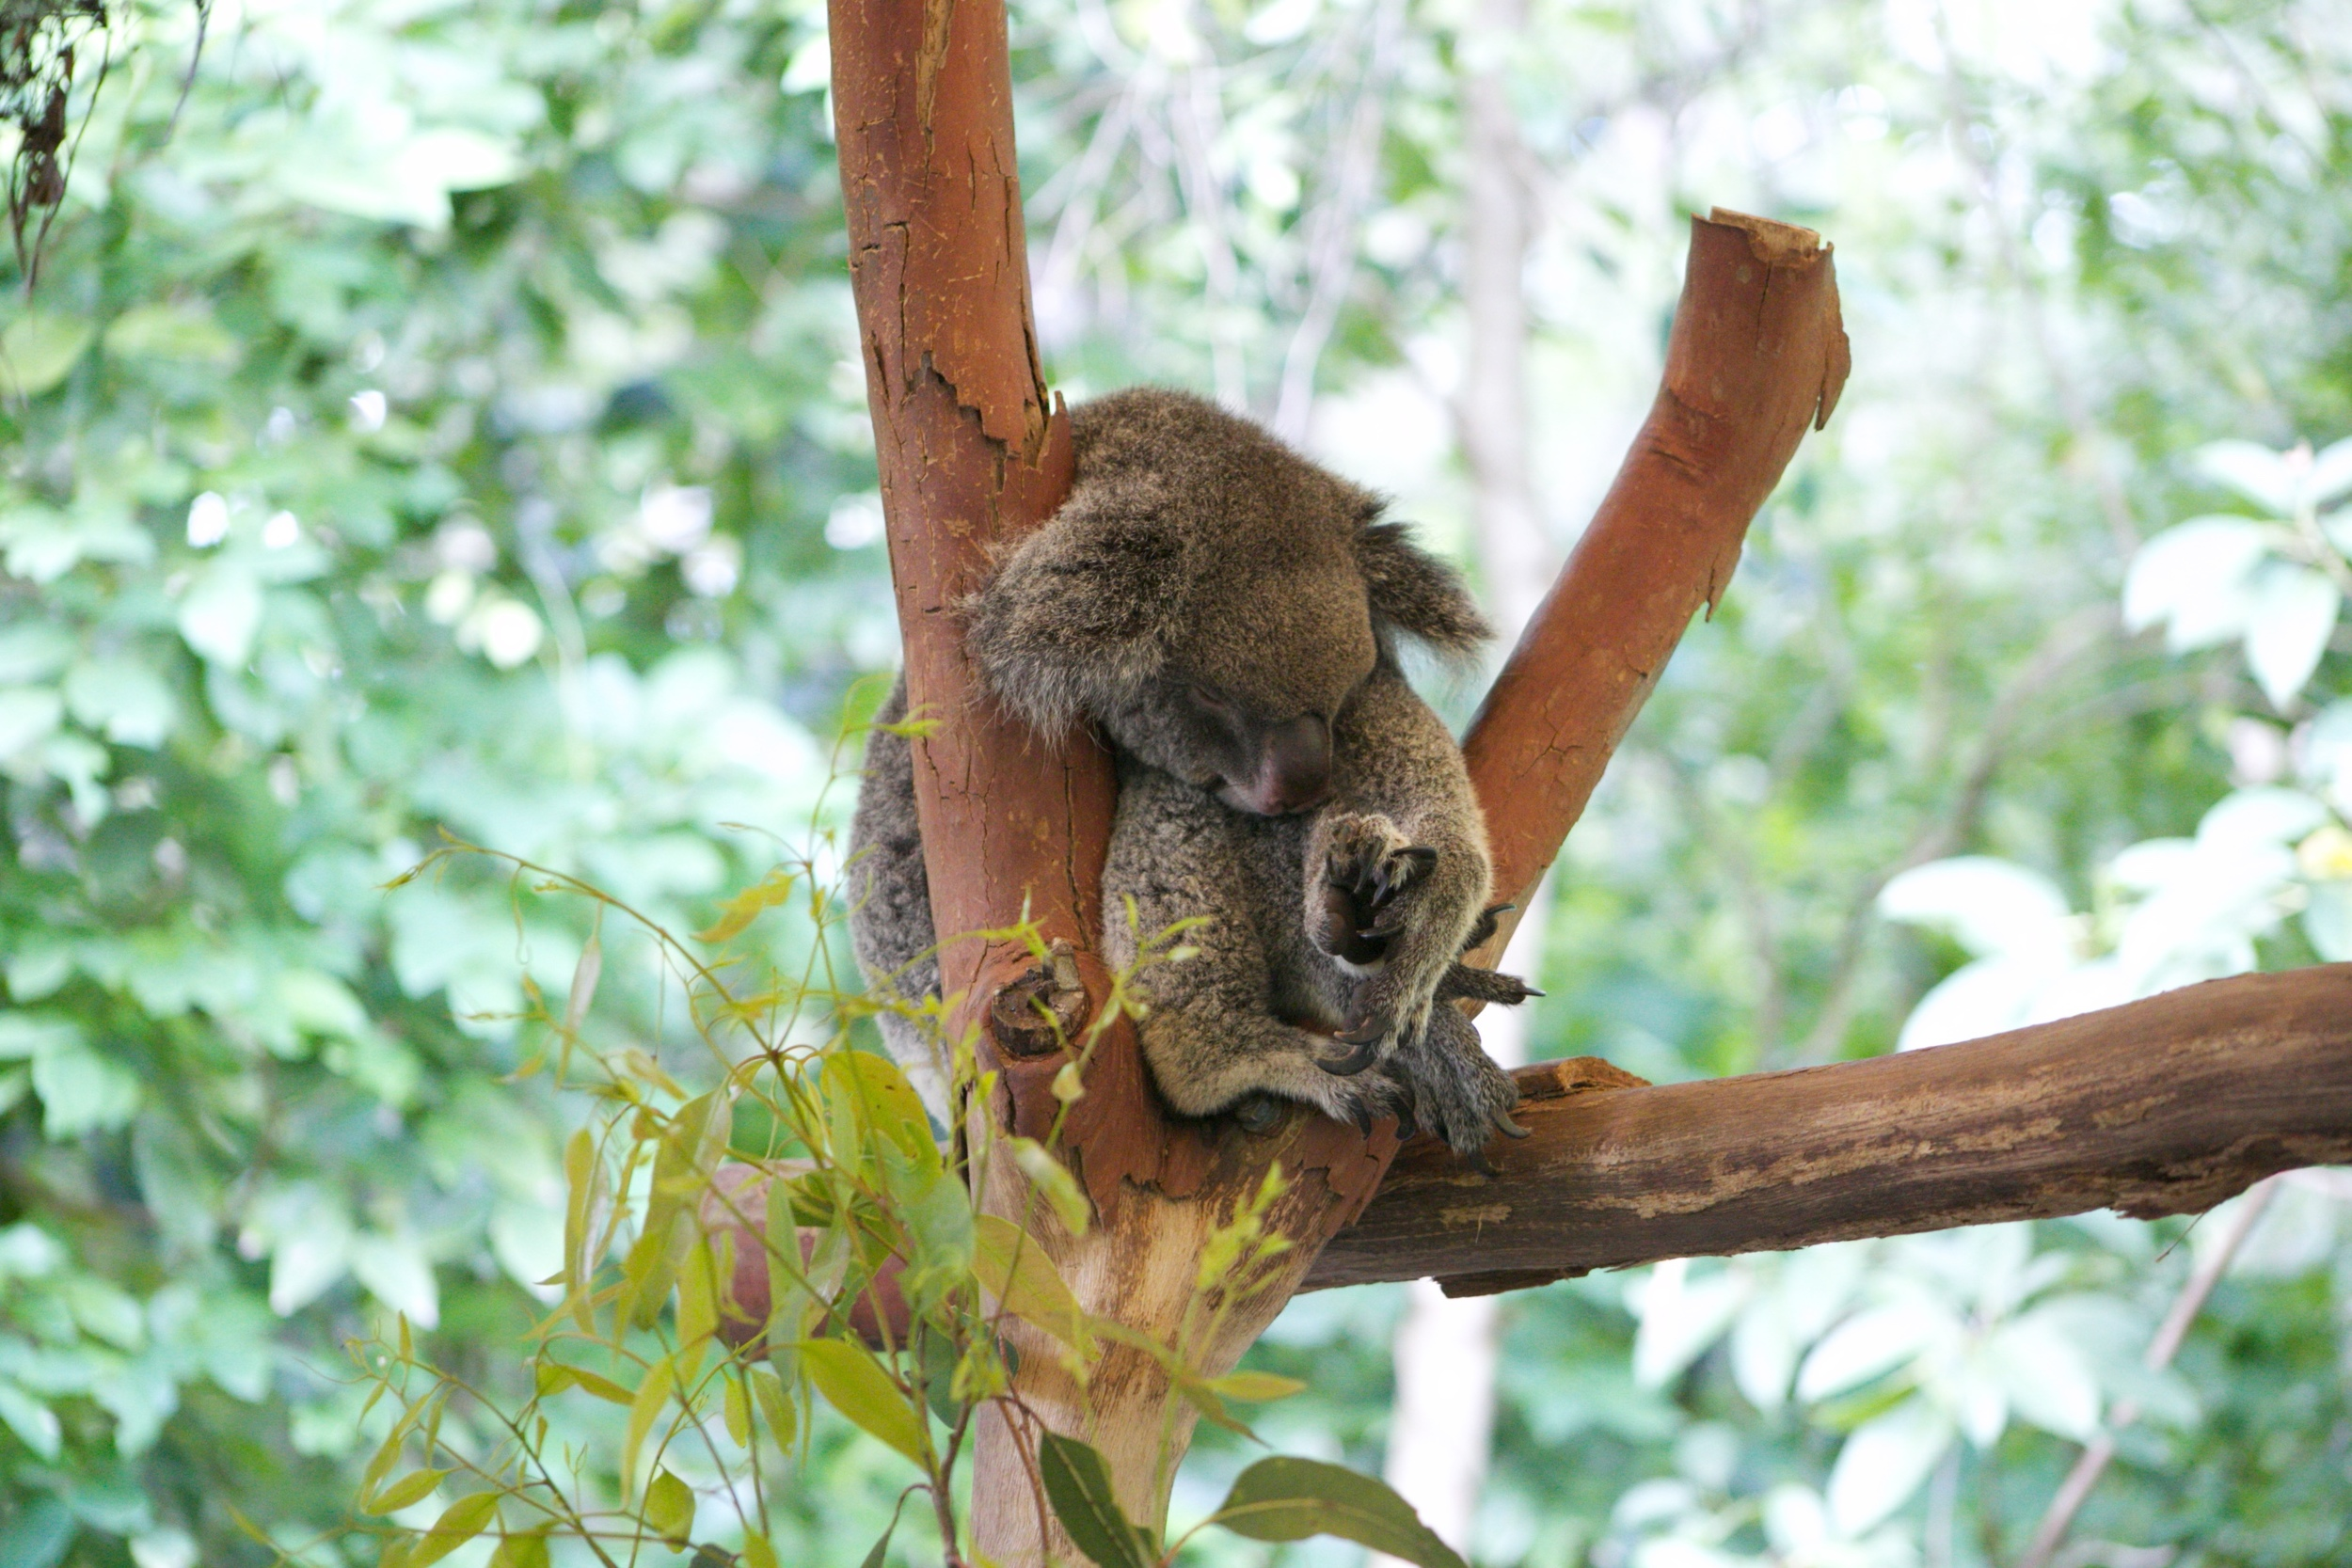 A koala sleeping in the crook of a tree.